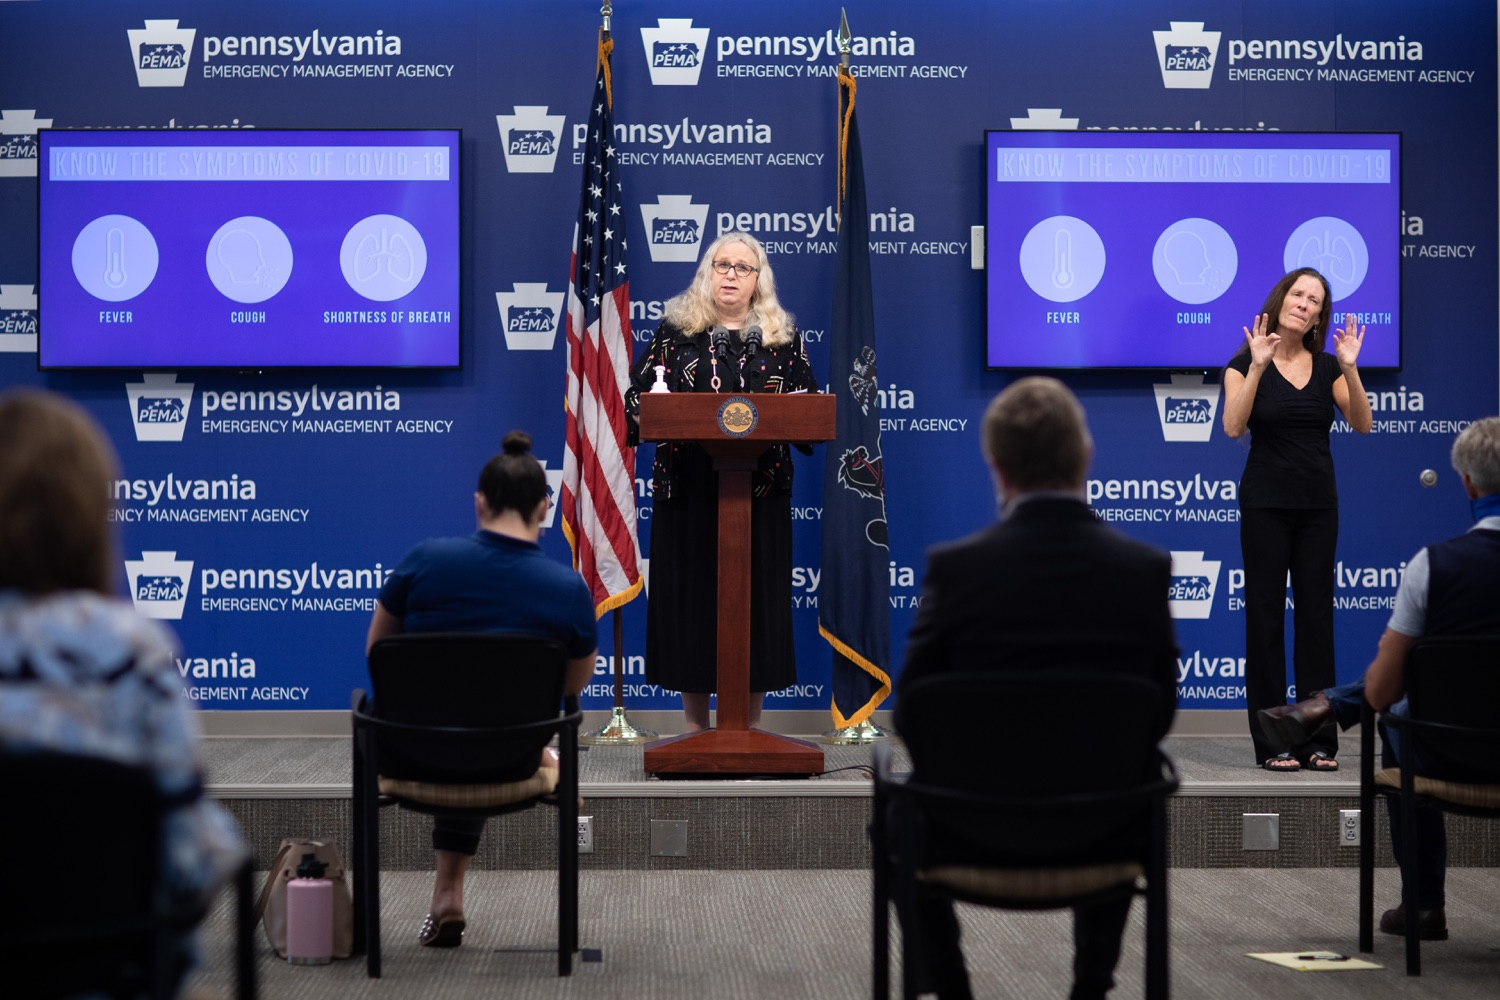 "<a href=""https://filesource.wostreaming.net/commonwealthofpa/photo/18176_doh_covid19_update_dz_10.jpg"" target=""_blank"">⇣ Download Photo<br></a>Secretary of Health Dr. Rachel Levine speaking to the press.  The Pennsylvania Department of Health today confirmed as of 12:00 a.m., July 23, that there are 962 additional positive cases of COVID-19, bringing the statewide total to 104,358. All 67 counties in Pennsylvania have cases of COVID-19. Allegheny is reporting an increase of 147 cases, and Philadelphia is reporting an increase of 311 cases. Since there was no data reported from Philadelphia yesterday, the number of new cases is a culmination of cases from the past two days. Harrisburg, PA - July 23, 2020"